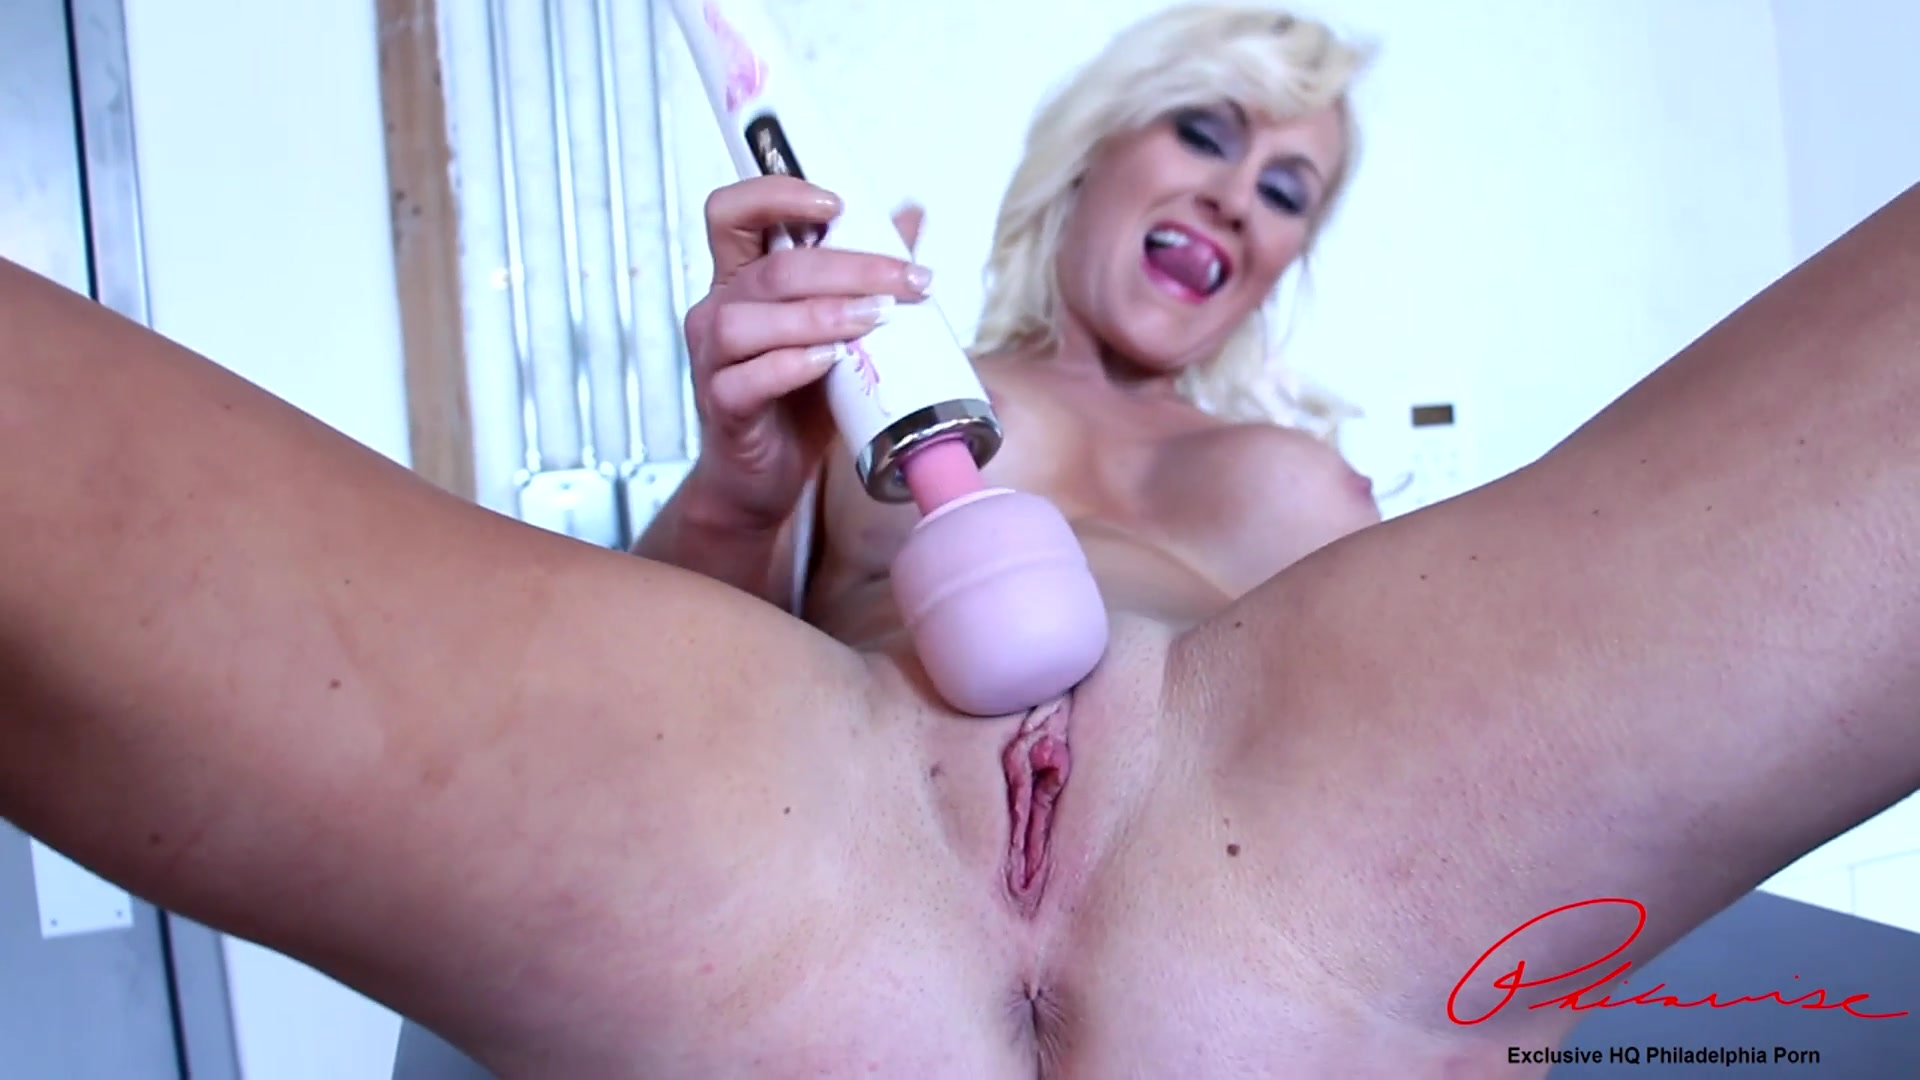 big tit blonde rachel harley in a sexy solo with toys